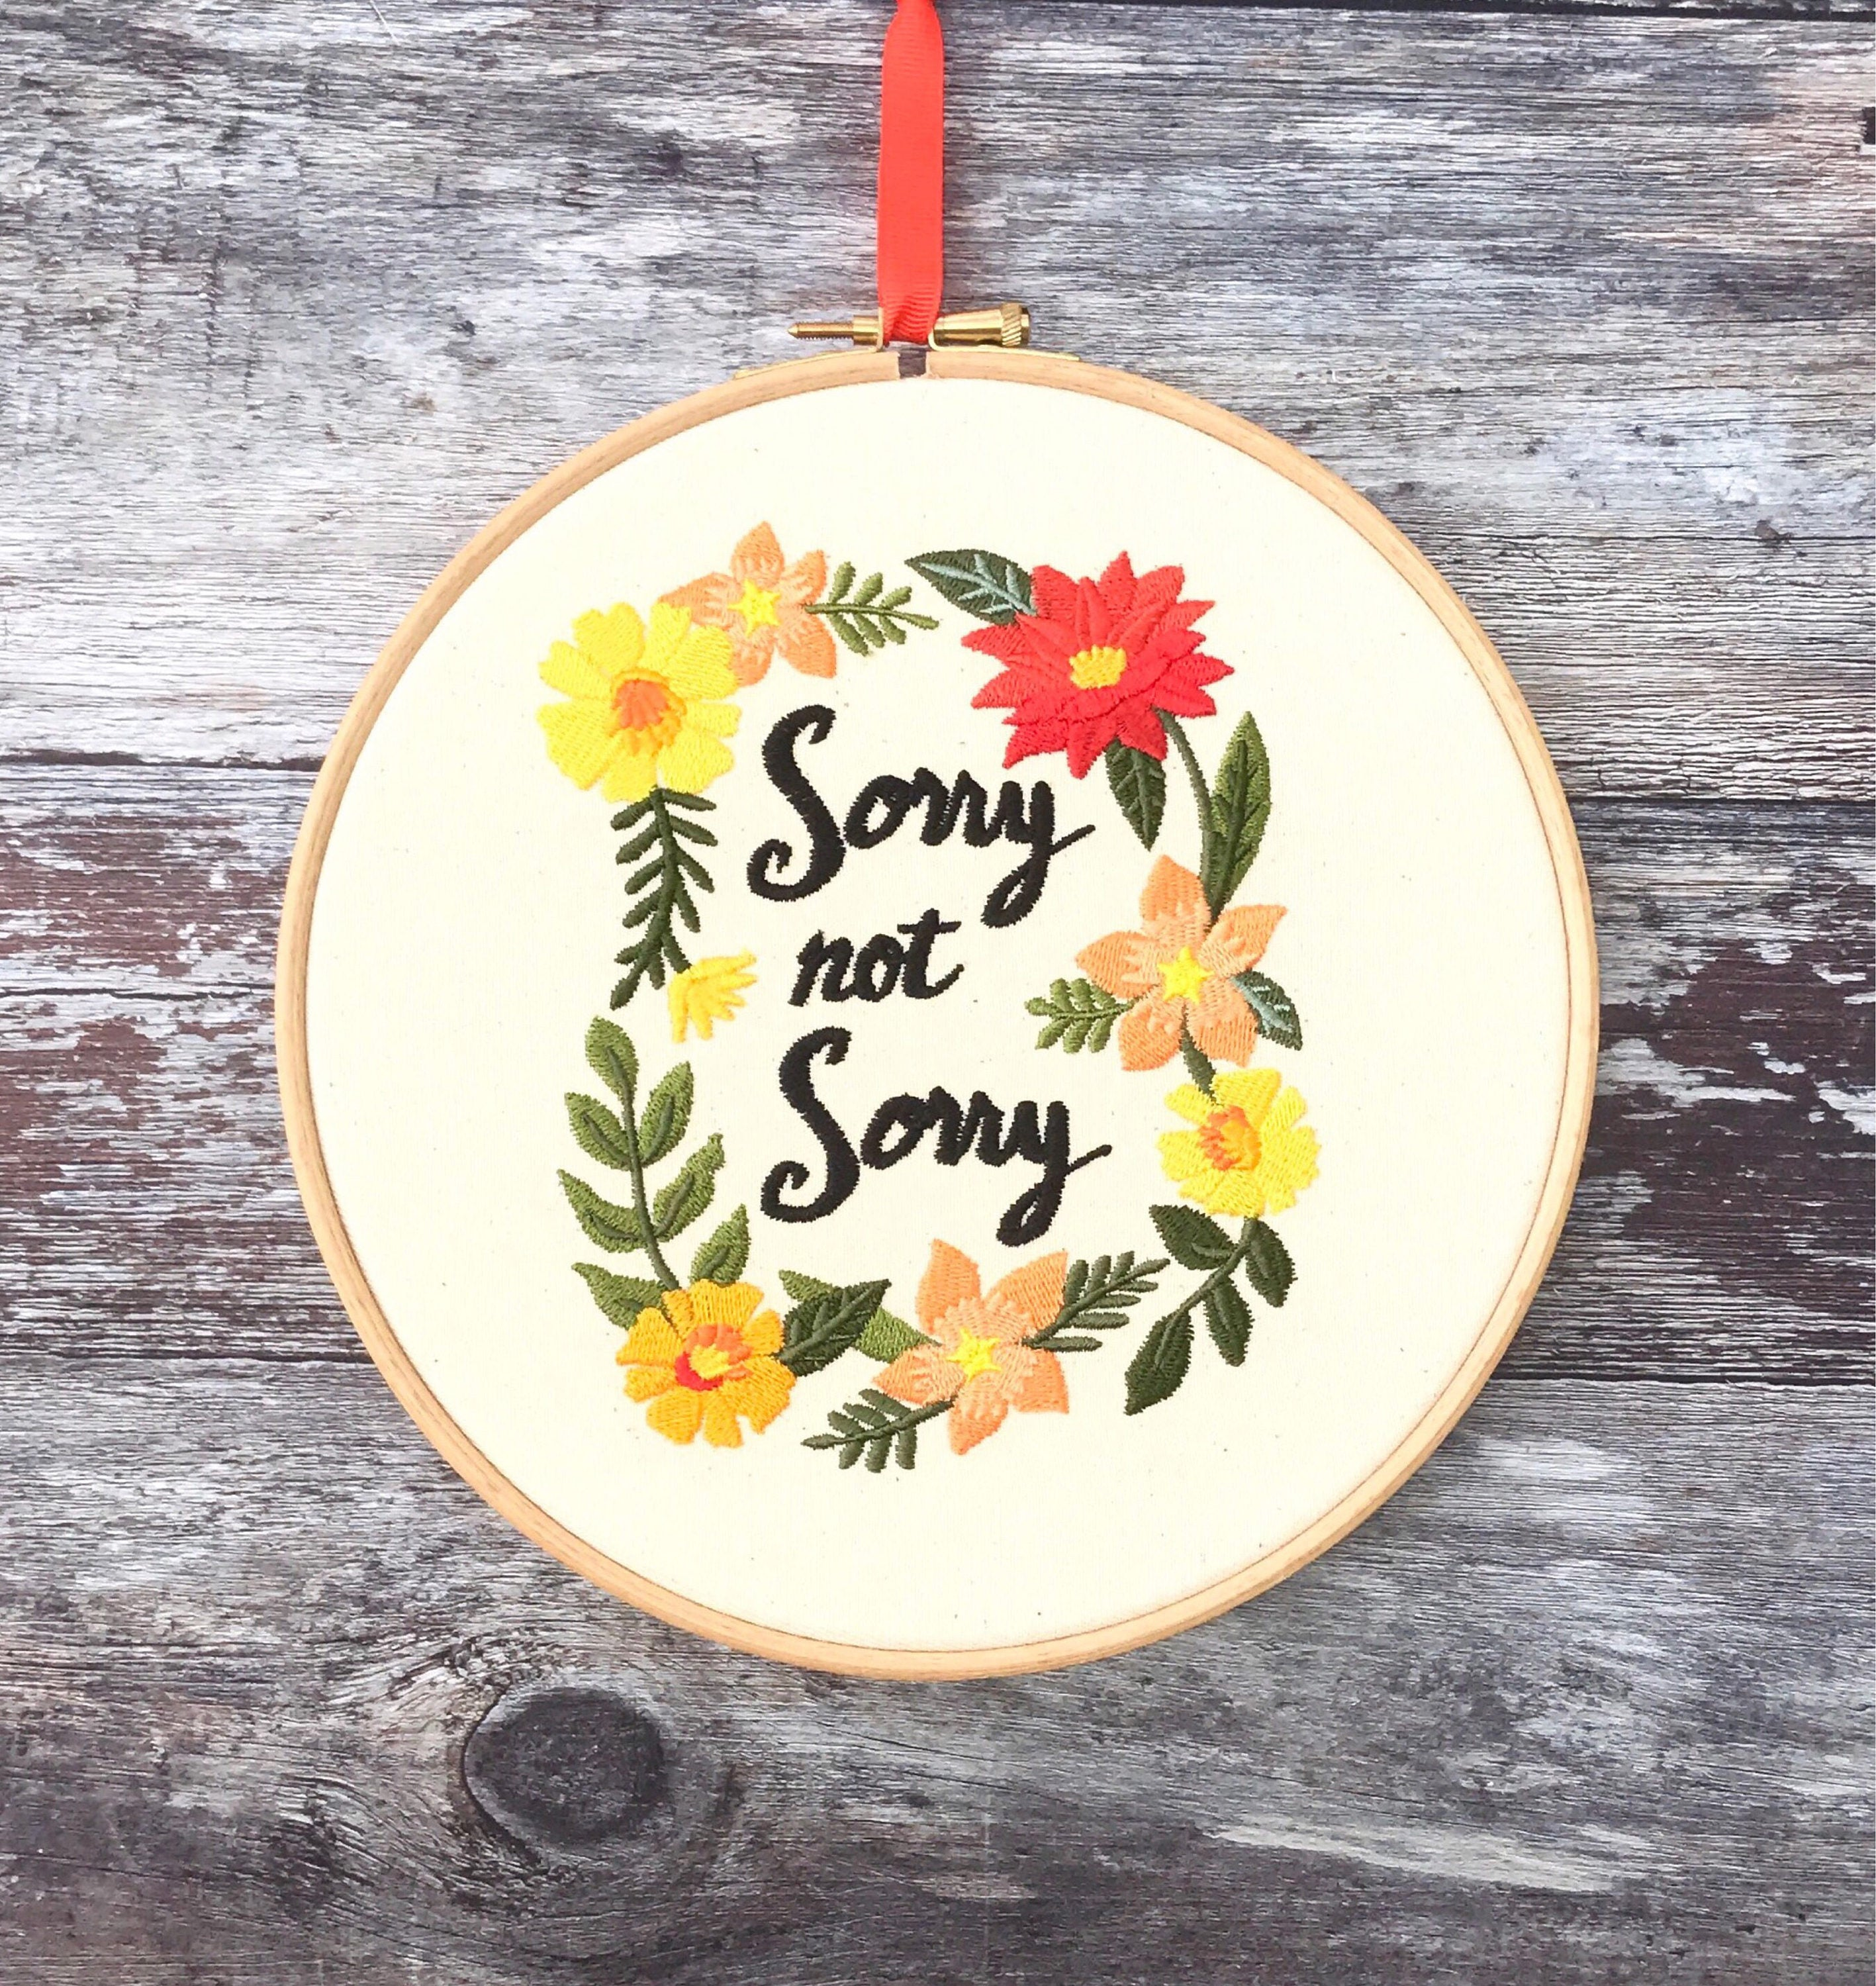 Sorry not sorry floral, Embroidery hoop art